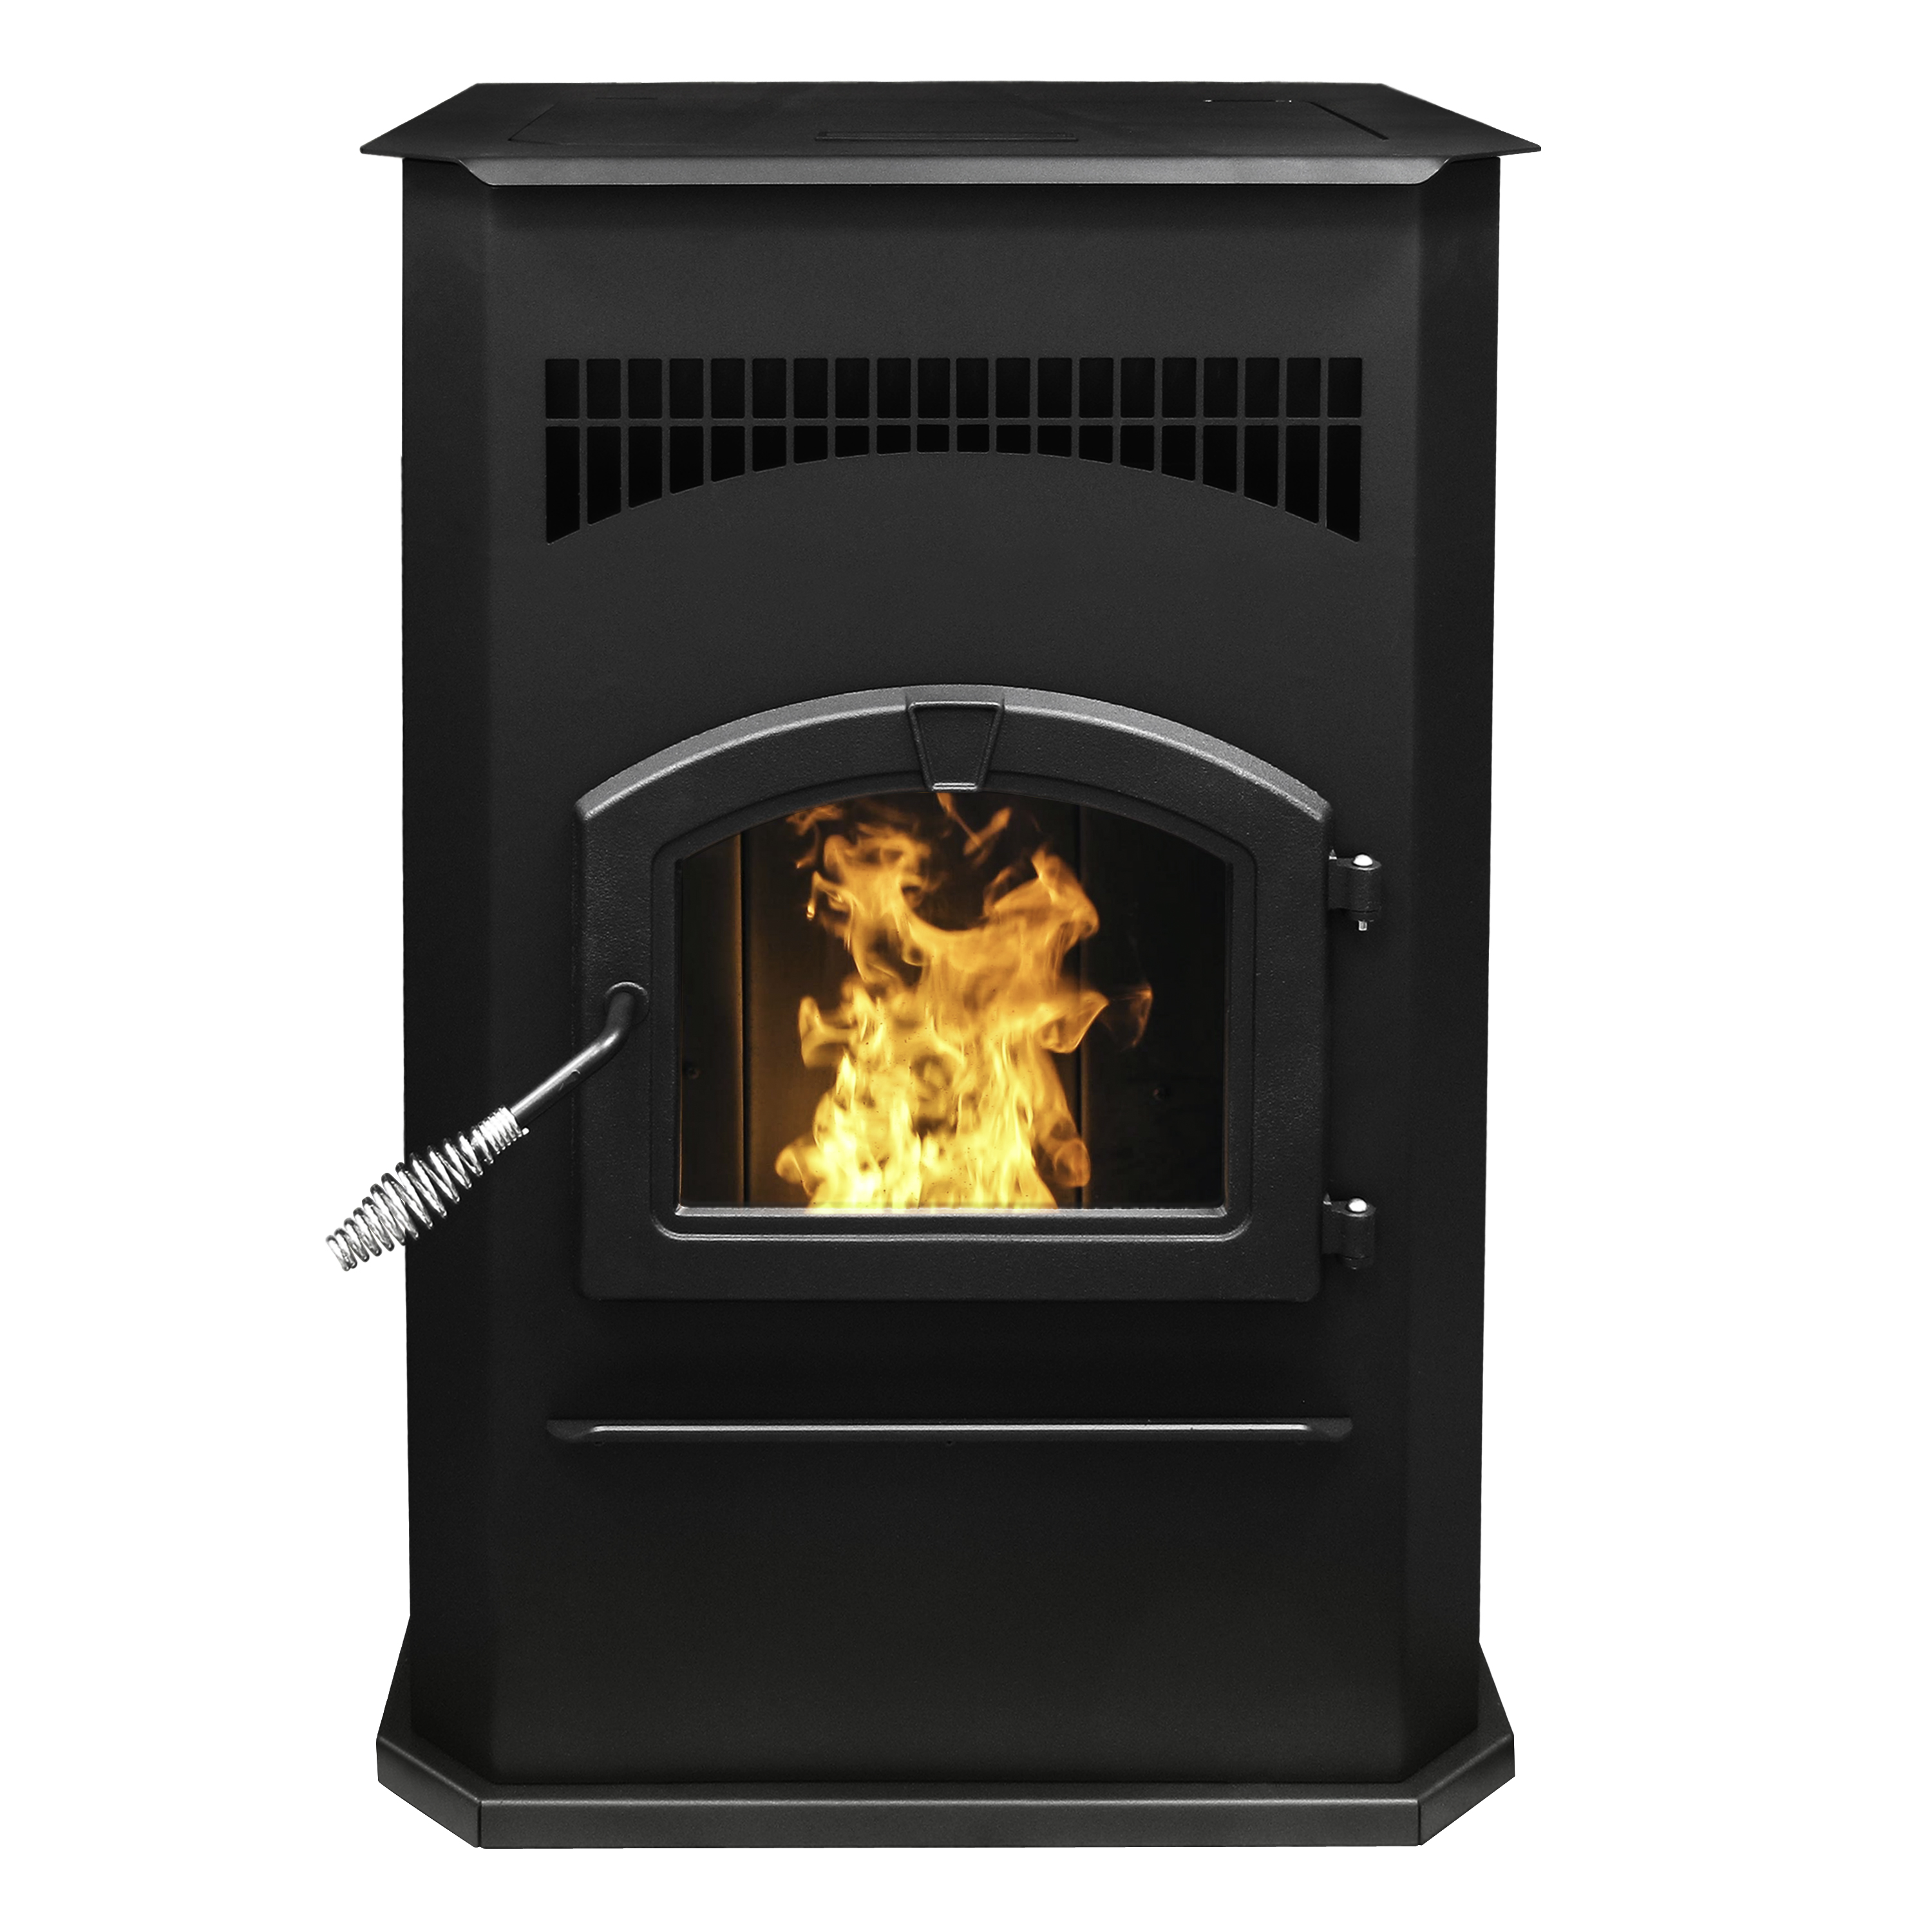 Pleasant Hearth 50,000 BTU Cabinet Pellet Stove